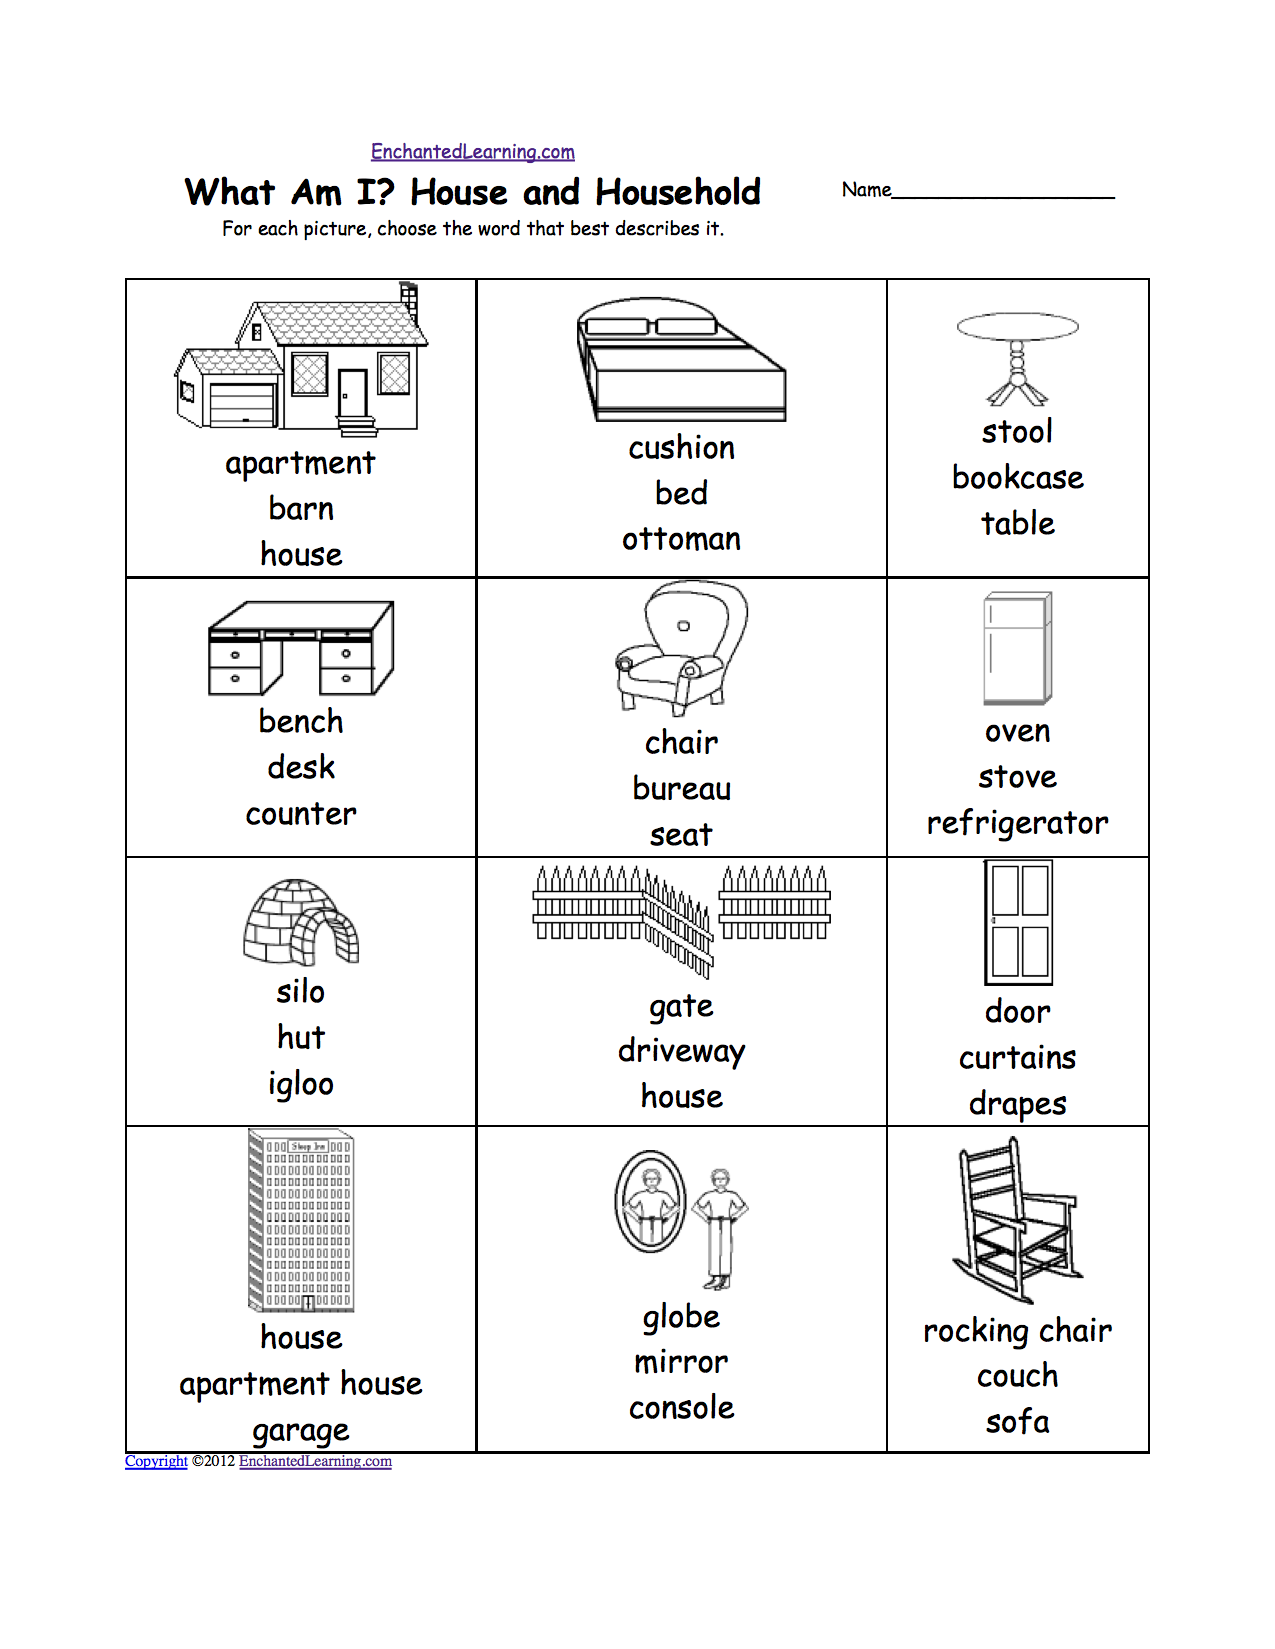 Weirdmailus  Prepossessing What Am I Worksheet Printouts  Enchantedlearningcom With Exquisite Verb Worksheets For Kids Besides Median Mean Mode Worksheet Furthermore Maths Year  Worksheets With Breathtaking Spot The Difference Worksheet Also Japanese Worksheets For Kids In Addition Root Words Worksheets Th Grade And Esl Relative Pronouns Worksheet As Well As Liquids Solids And Gases Worksheets Additionally Phase  Phonics Worksheets From Enchantedlearningcom With Weirdmailus  Exquisite What Am I Worksheet Printouts  Enchantedlearningcom With Breathtaking Verb Worksheets For Kids Besides Median Mean Mode Worksheet Furthermore Maths Year  Worksheets And Prepossessing Spot The Difference Worksheet Also Japanese Worksheets For Kids In Addition Root Words Worksheets Th Grade From Enchantedlearningcom